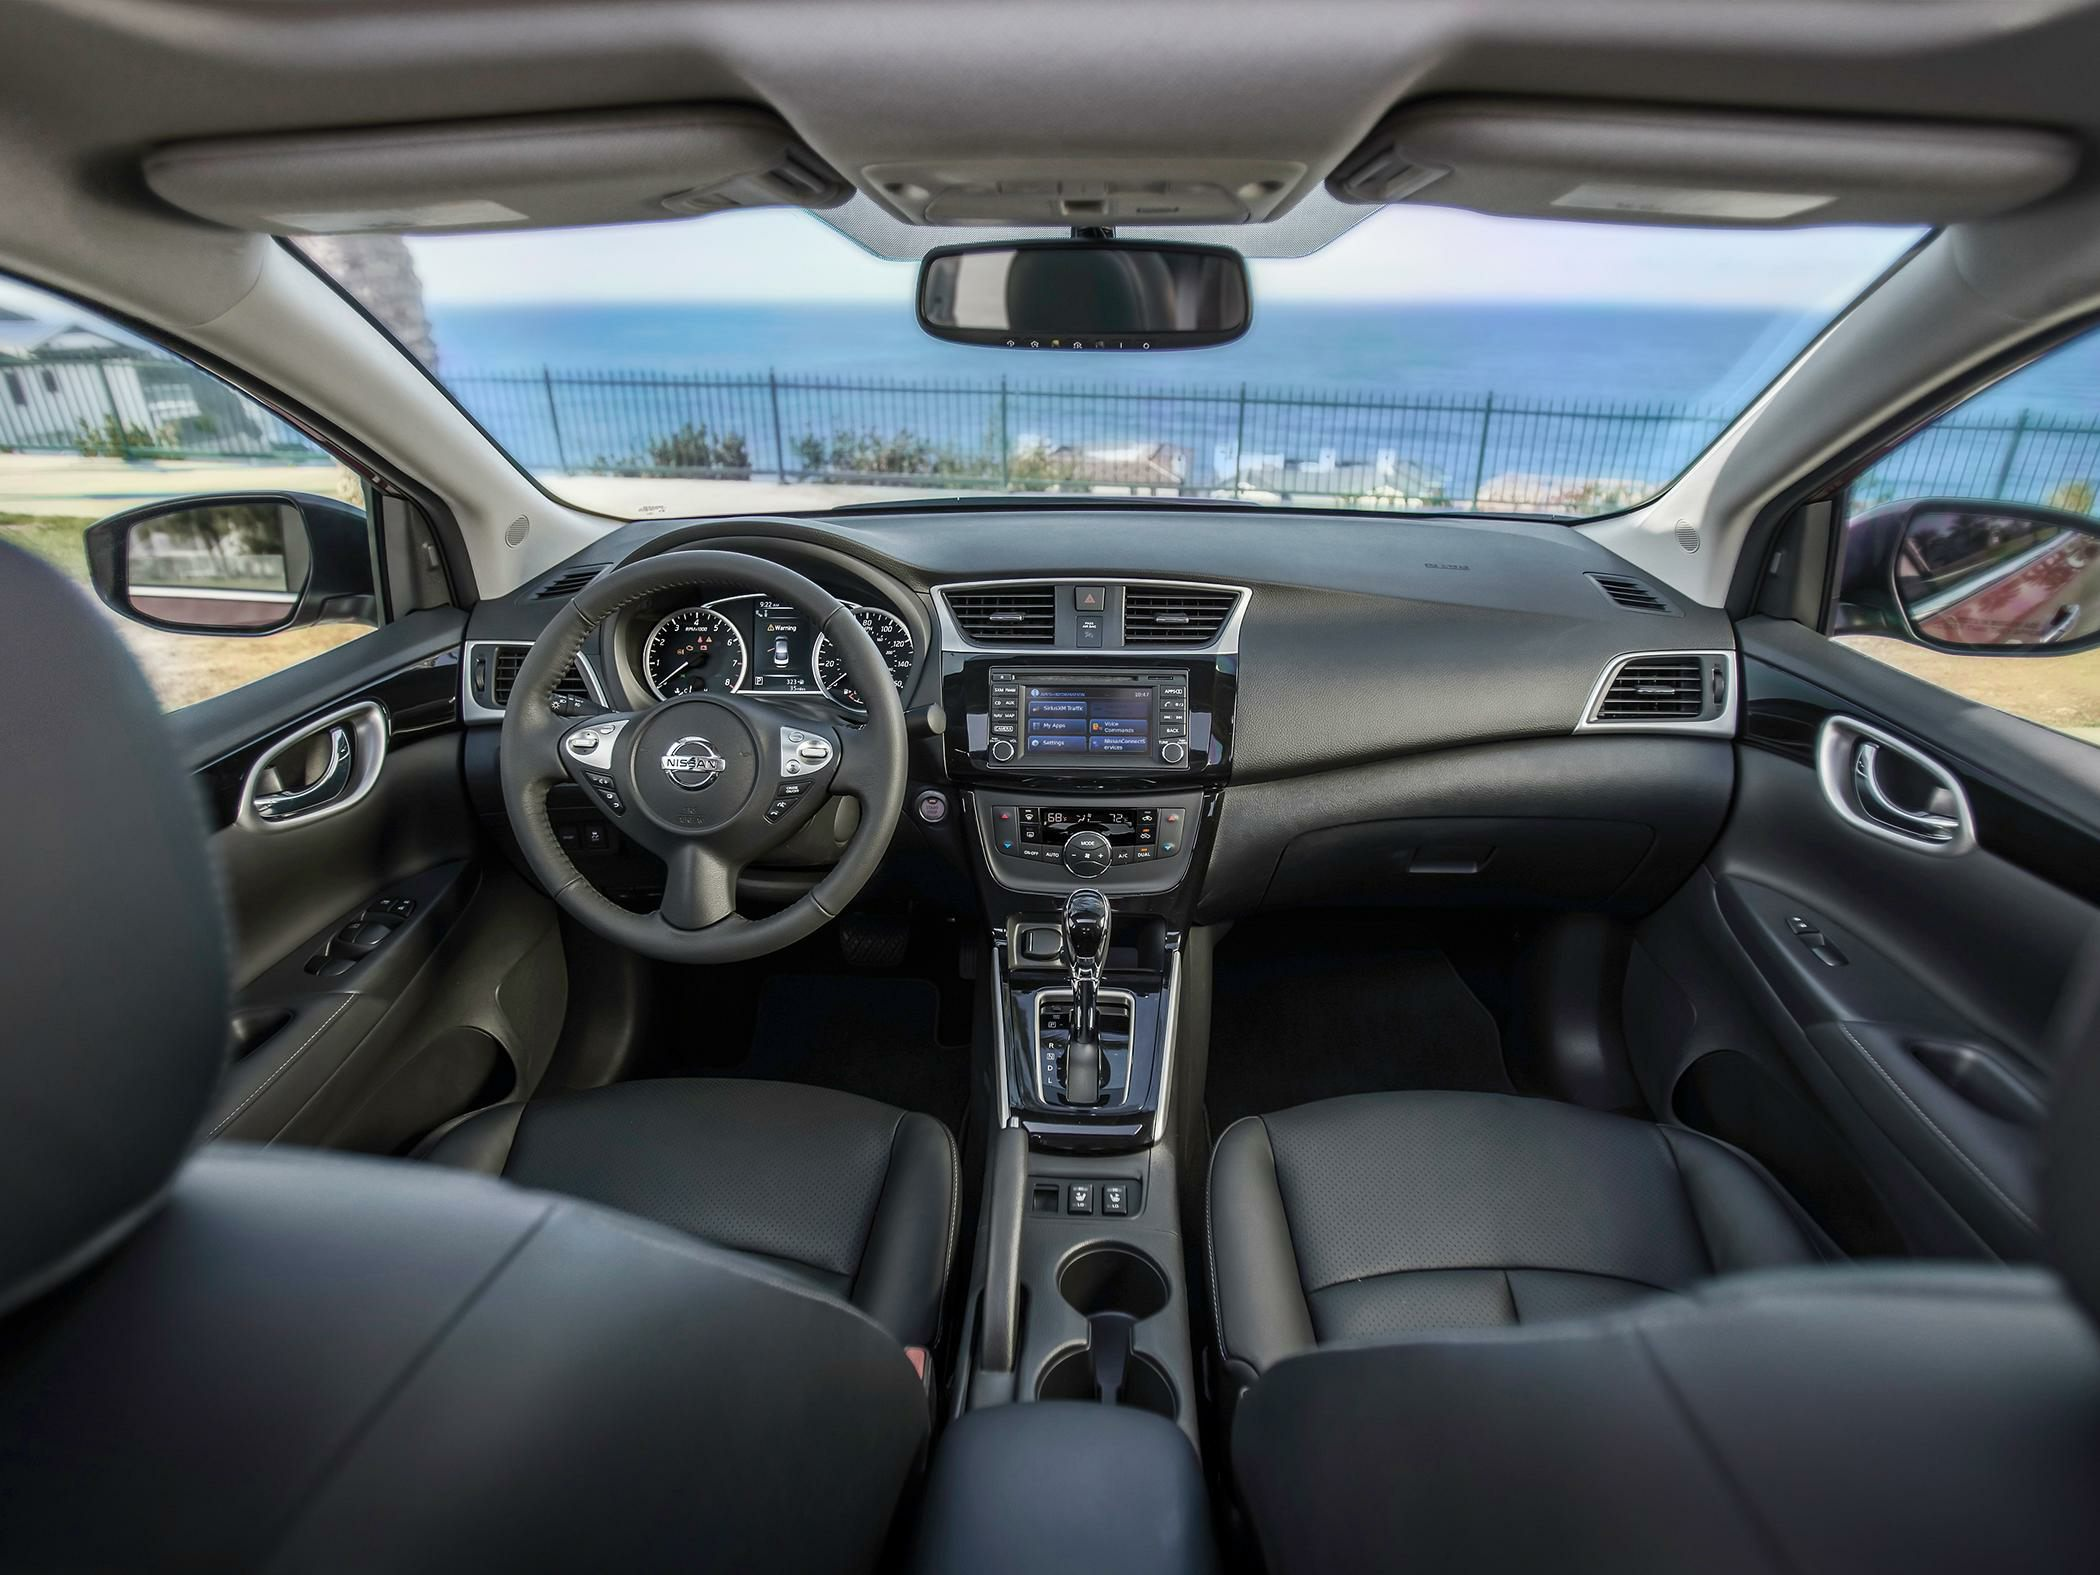 2018 Nissan Sentra Deals Prices Incentives & Leases Overview